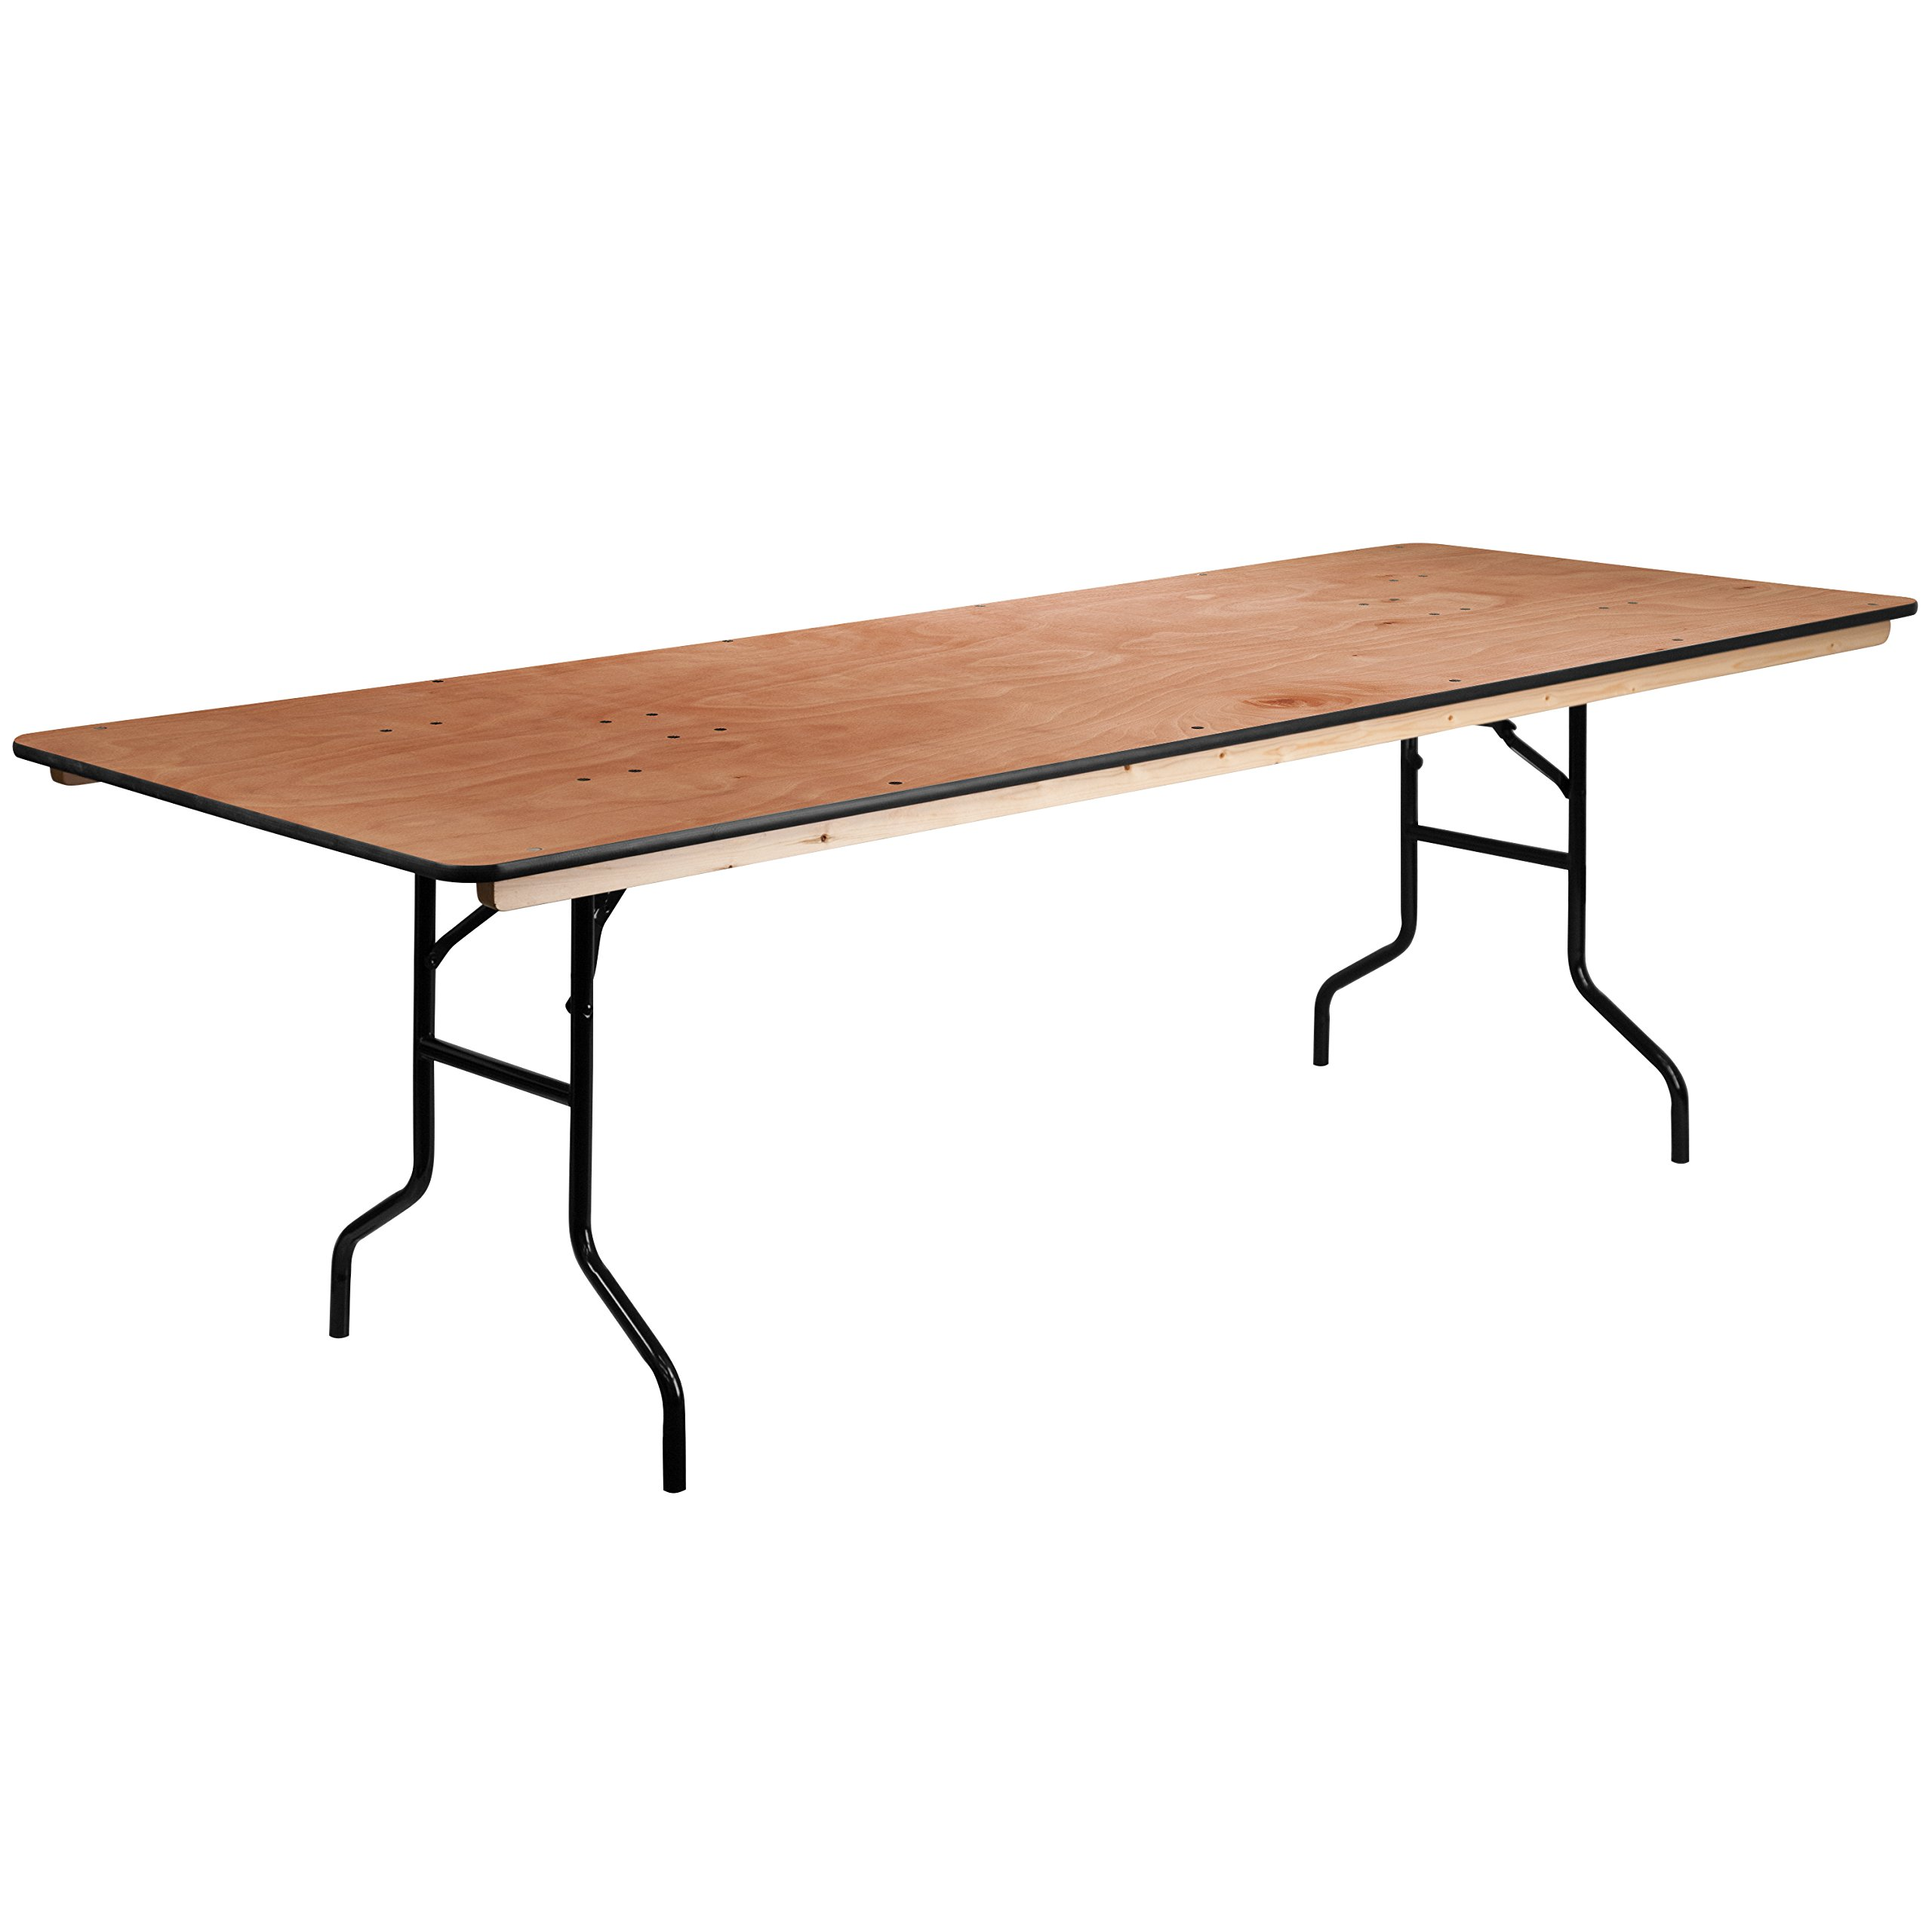 Flash Furniture 36'' x 96'' Rectangular Wood Folding Banquet Table with Clear Coated Finished Top